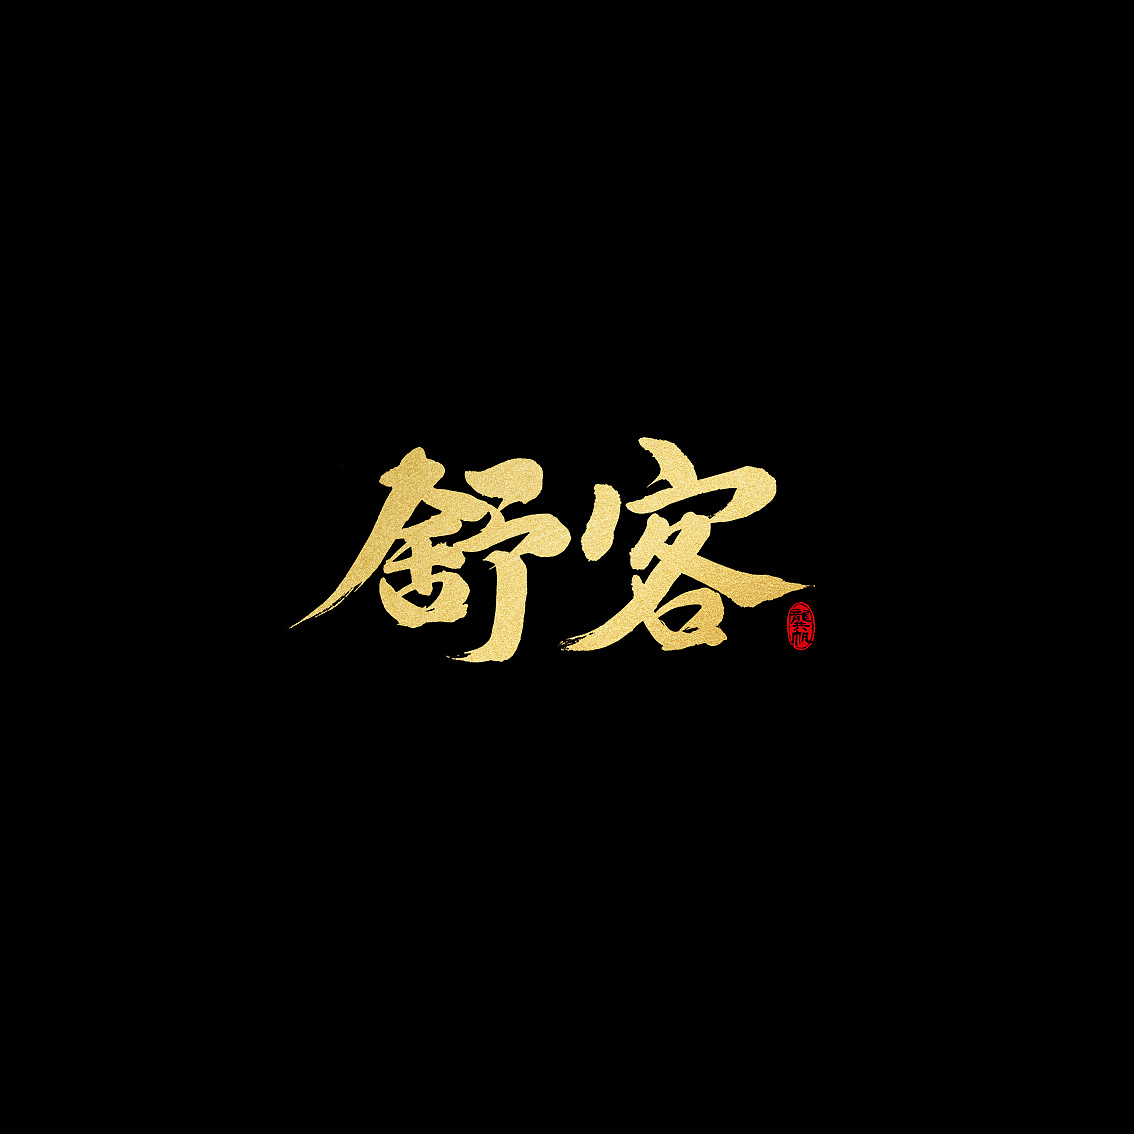 12P Chinese traditional calligraphy brush calligraphy font style appreciation #194